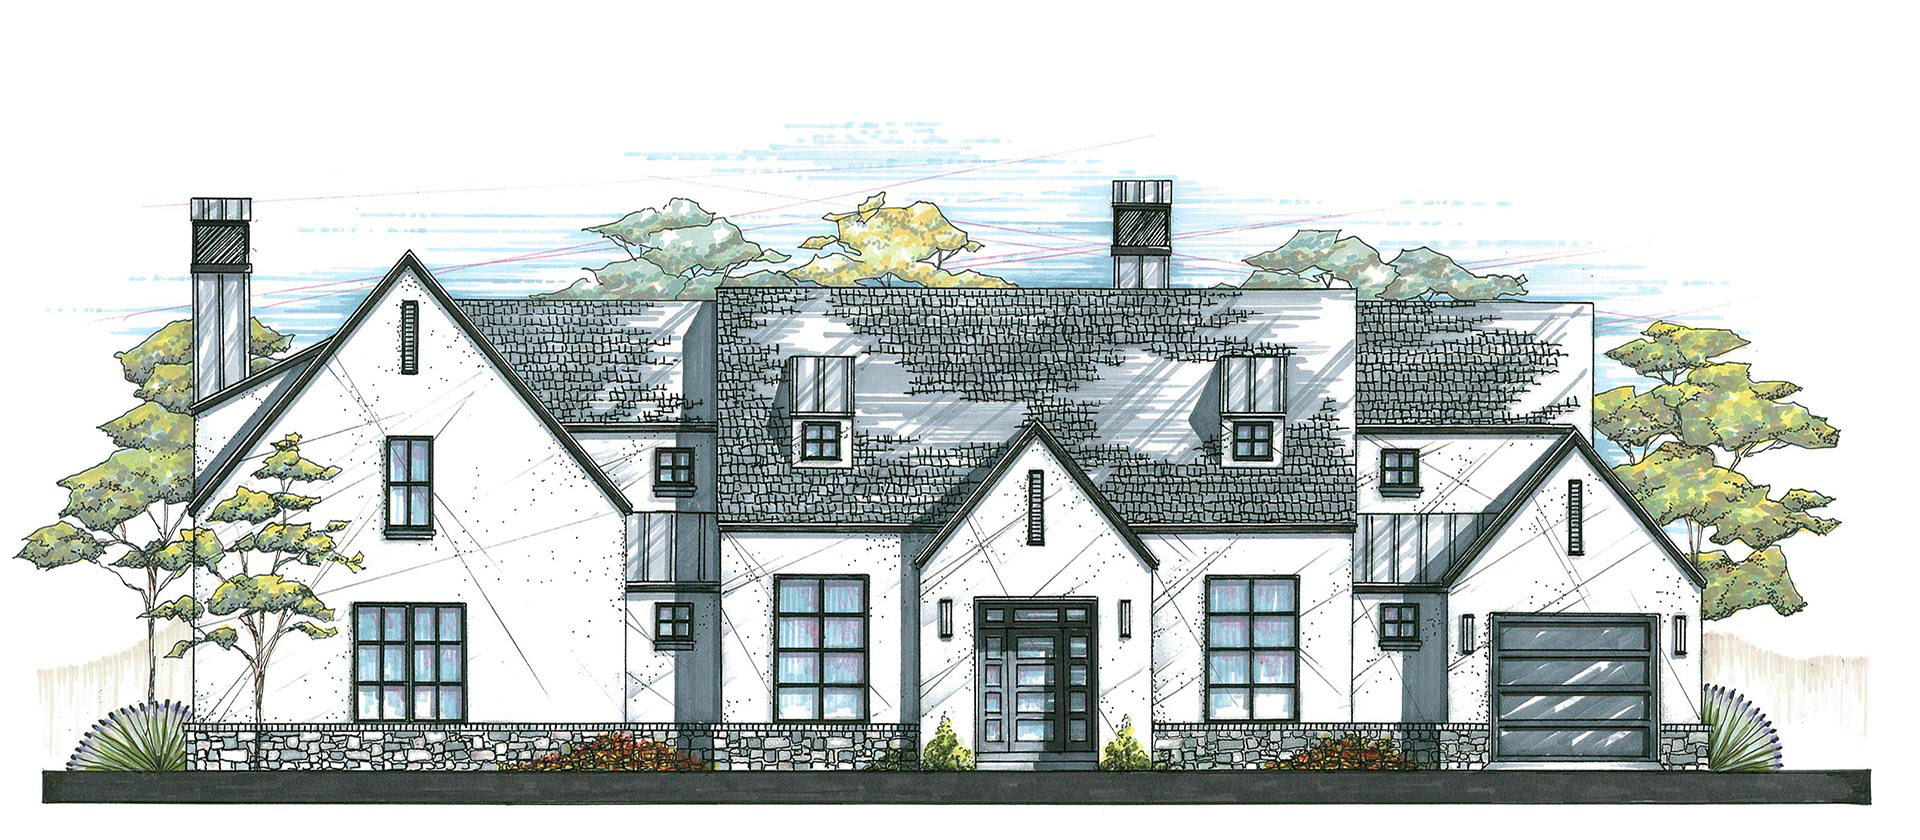 House Sketches house sketches gallery | bainbridge design group